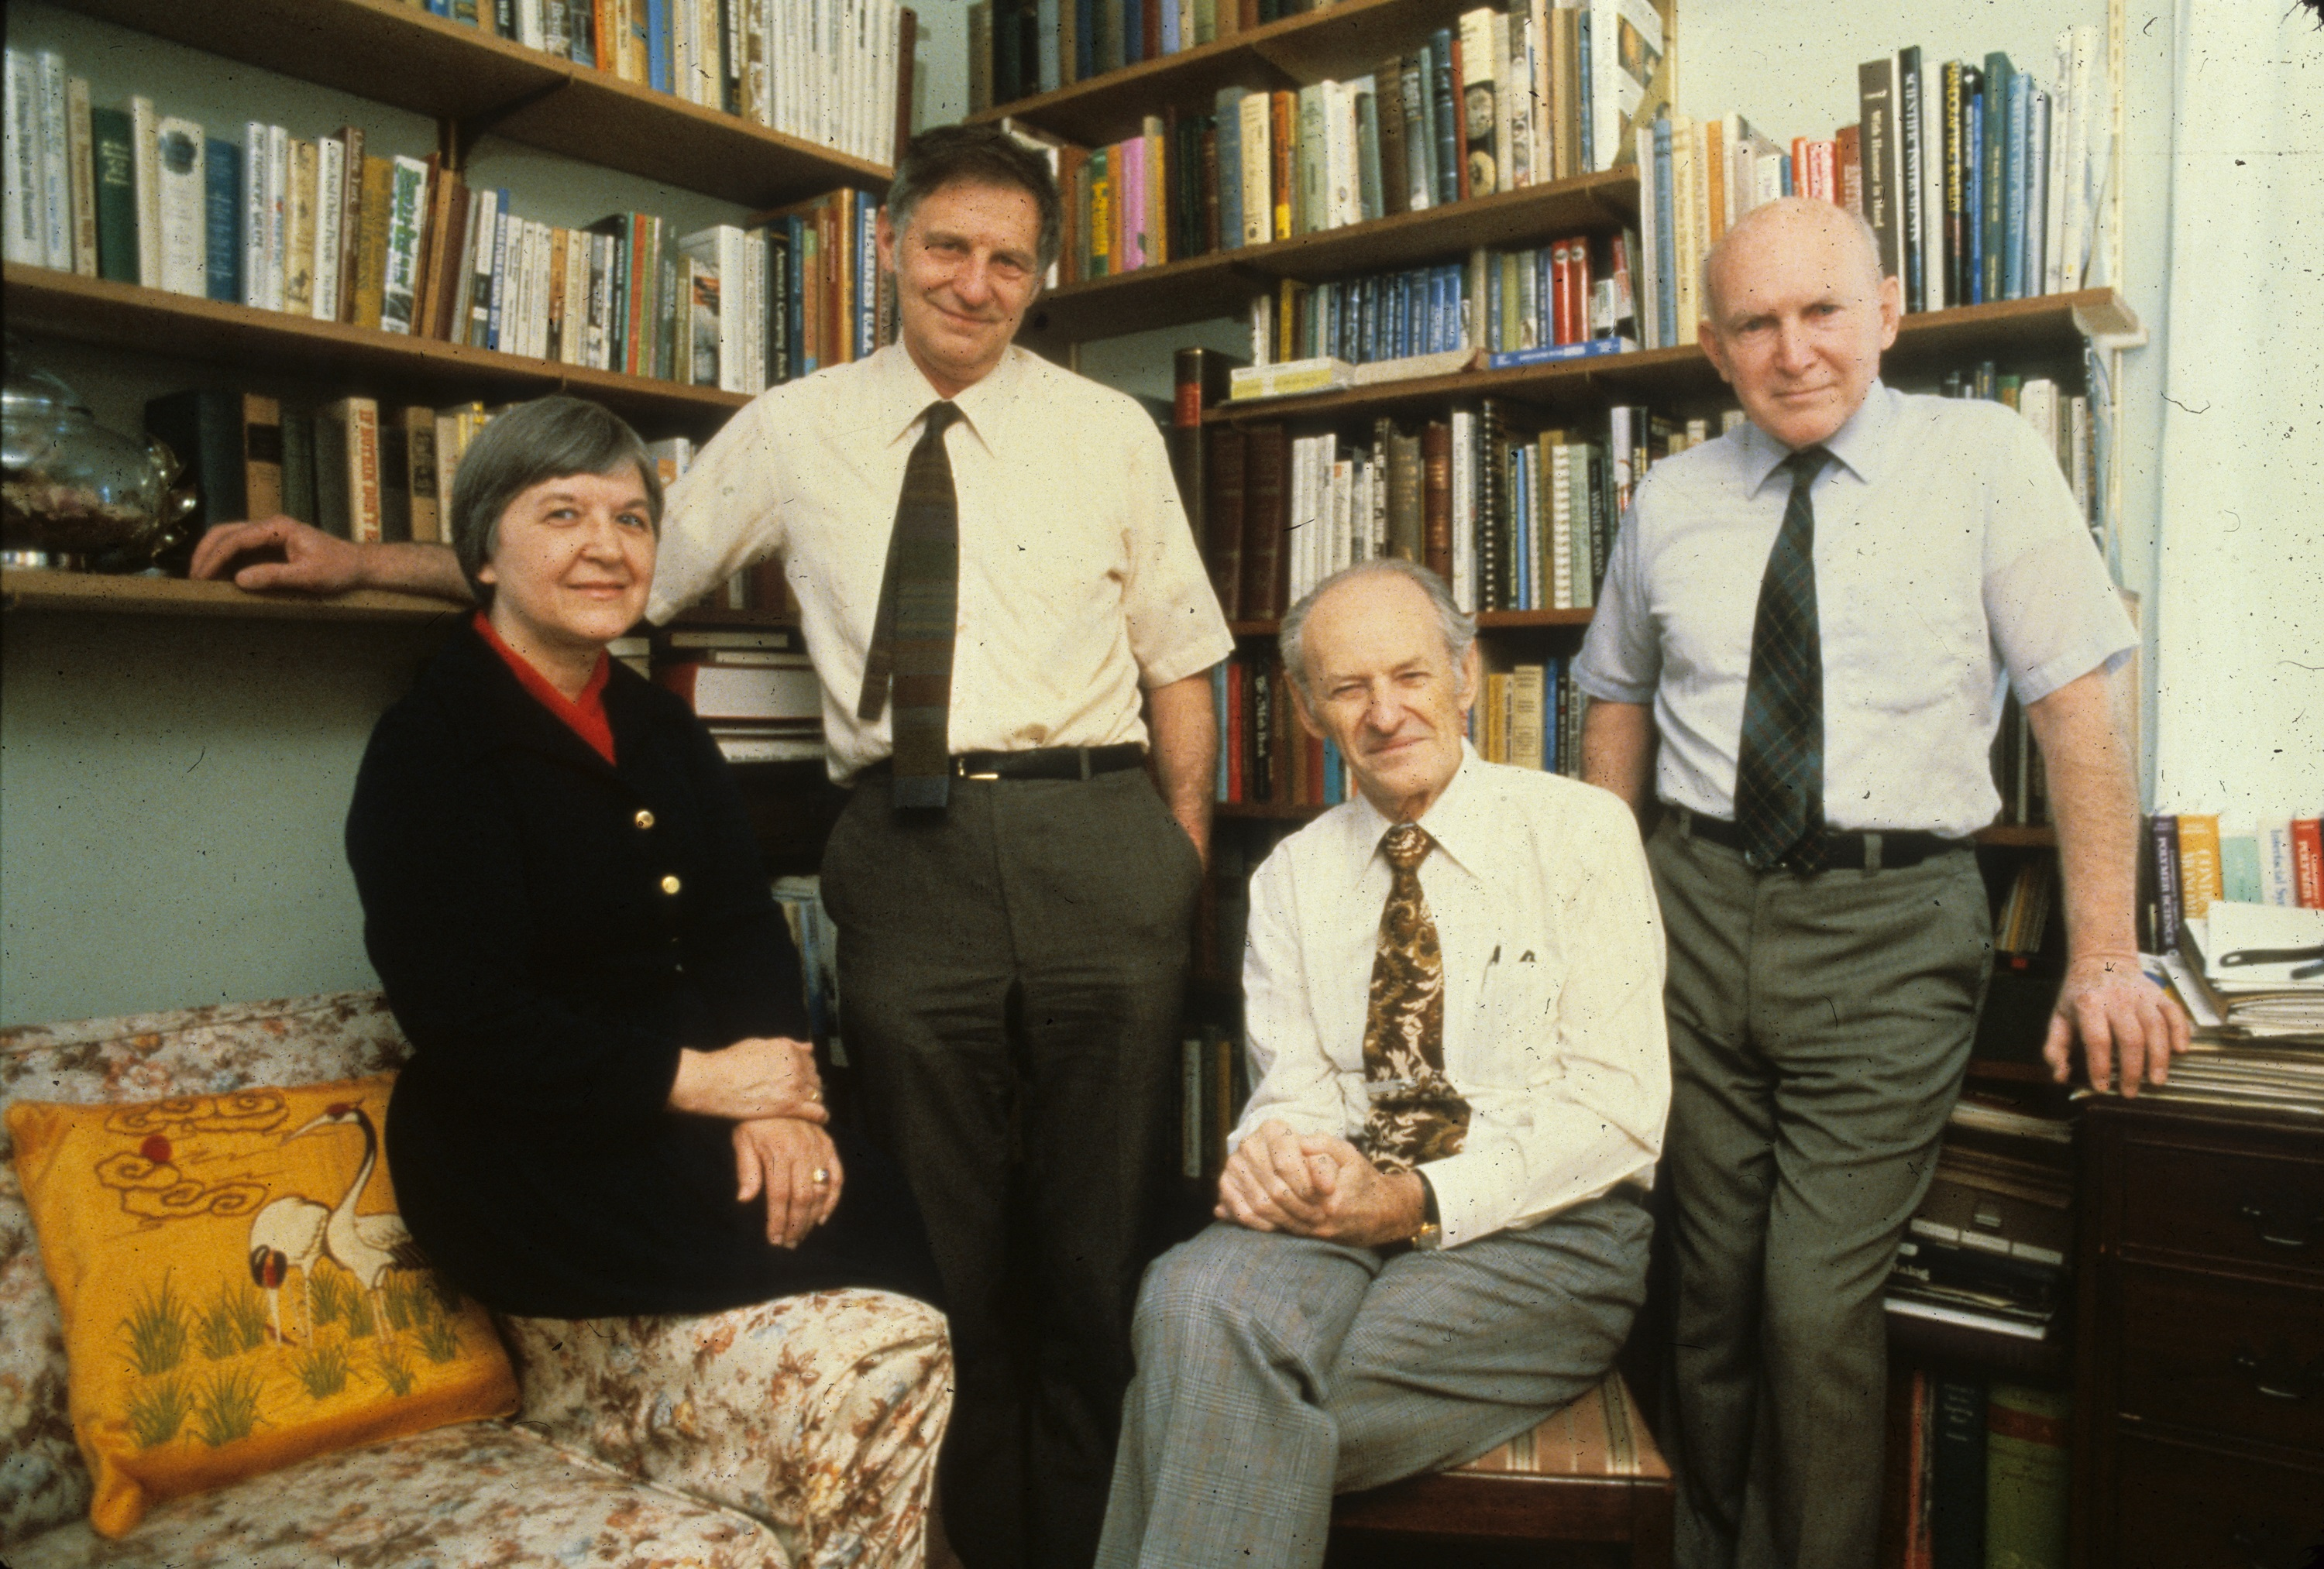 Stephanie Kwolek and others of the DuPont group that developed Kevlar. Left to right, Kwolek, Herbert Blades, Paul W. Morgan, and Joseph L. Rivers Jr. Gift of Stephanie Kwolek. Courtesy DuPont.